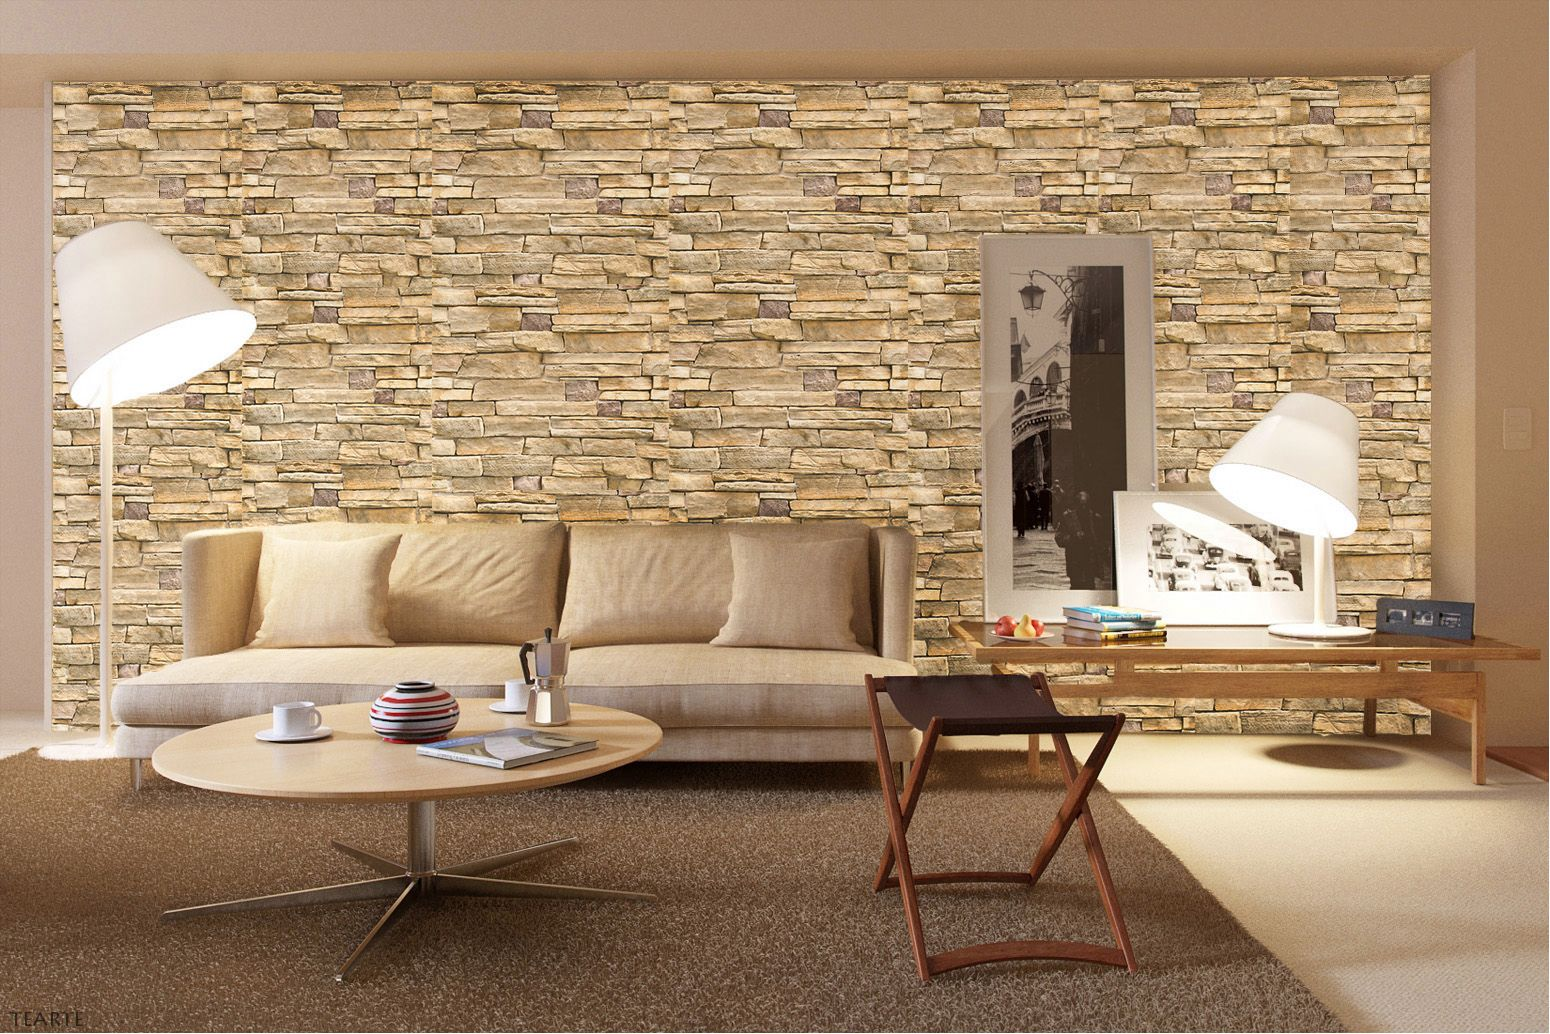 Living con papel mural de piedras beige ideas para tus for Papel decorativo para pared